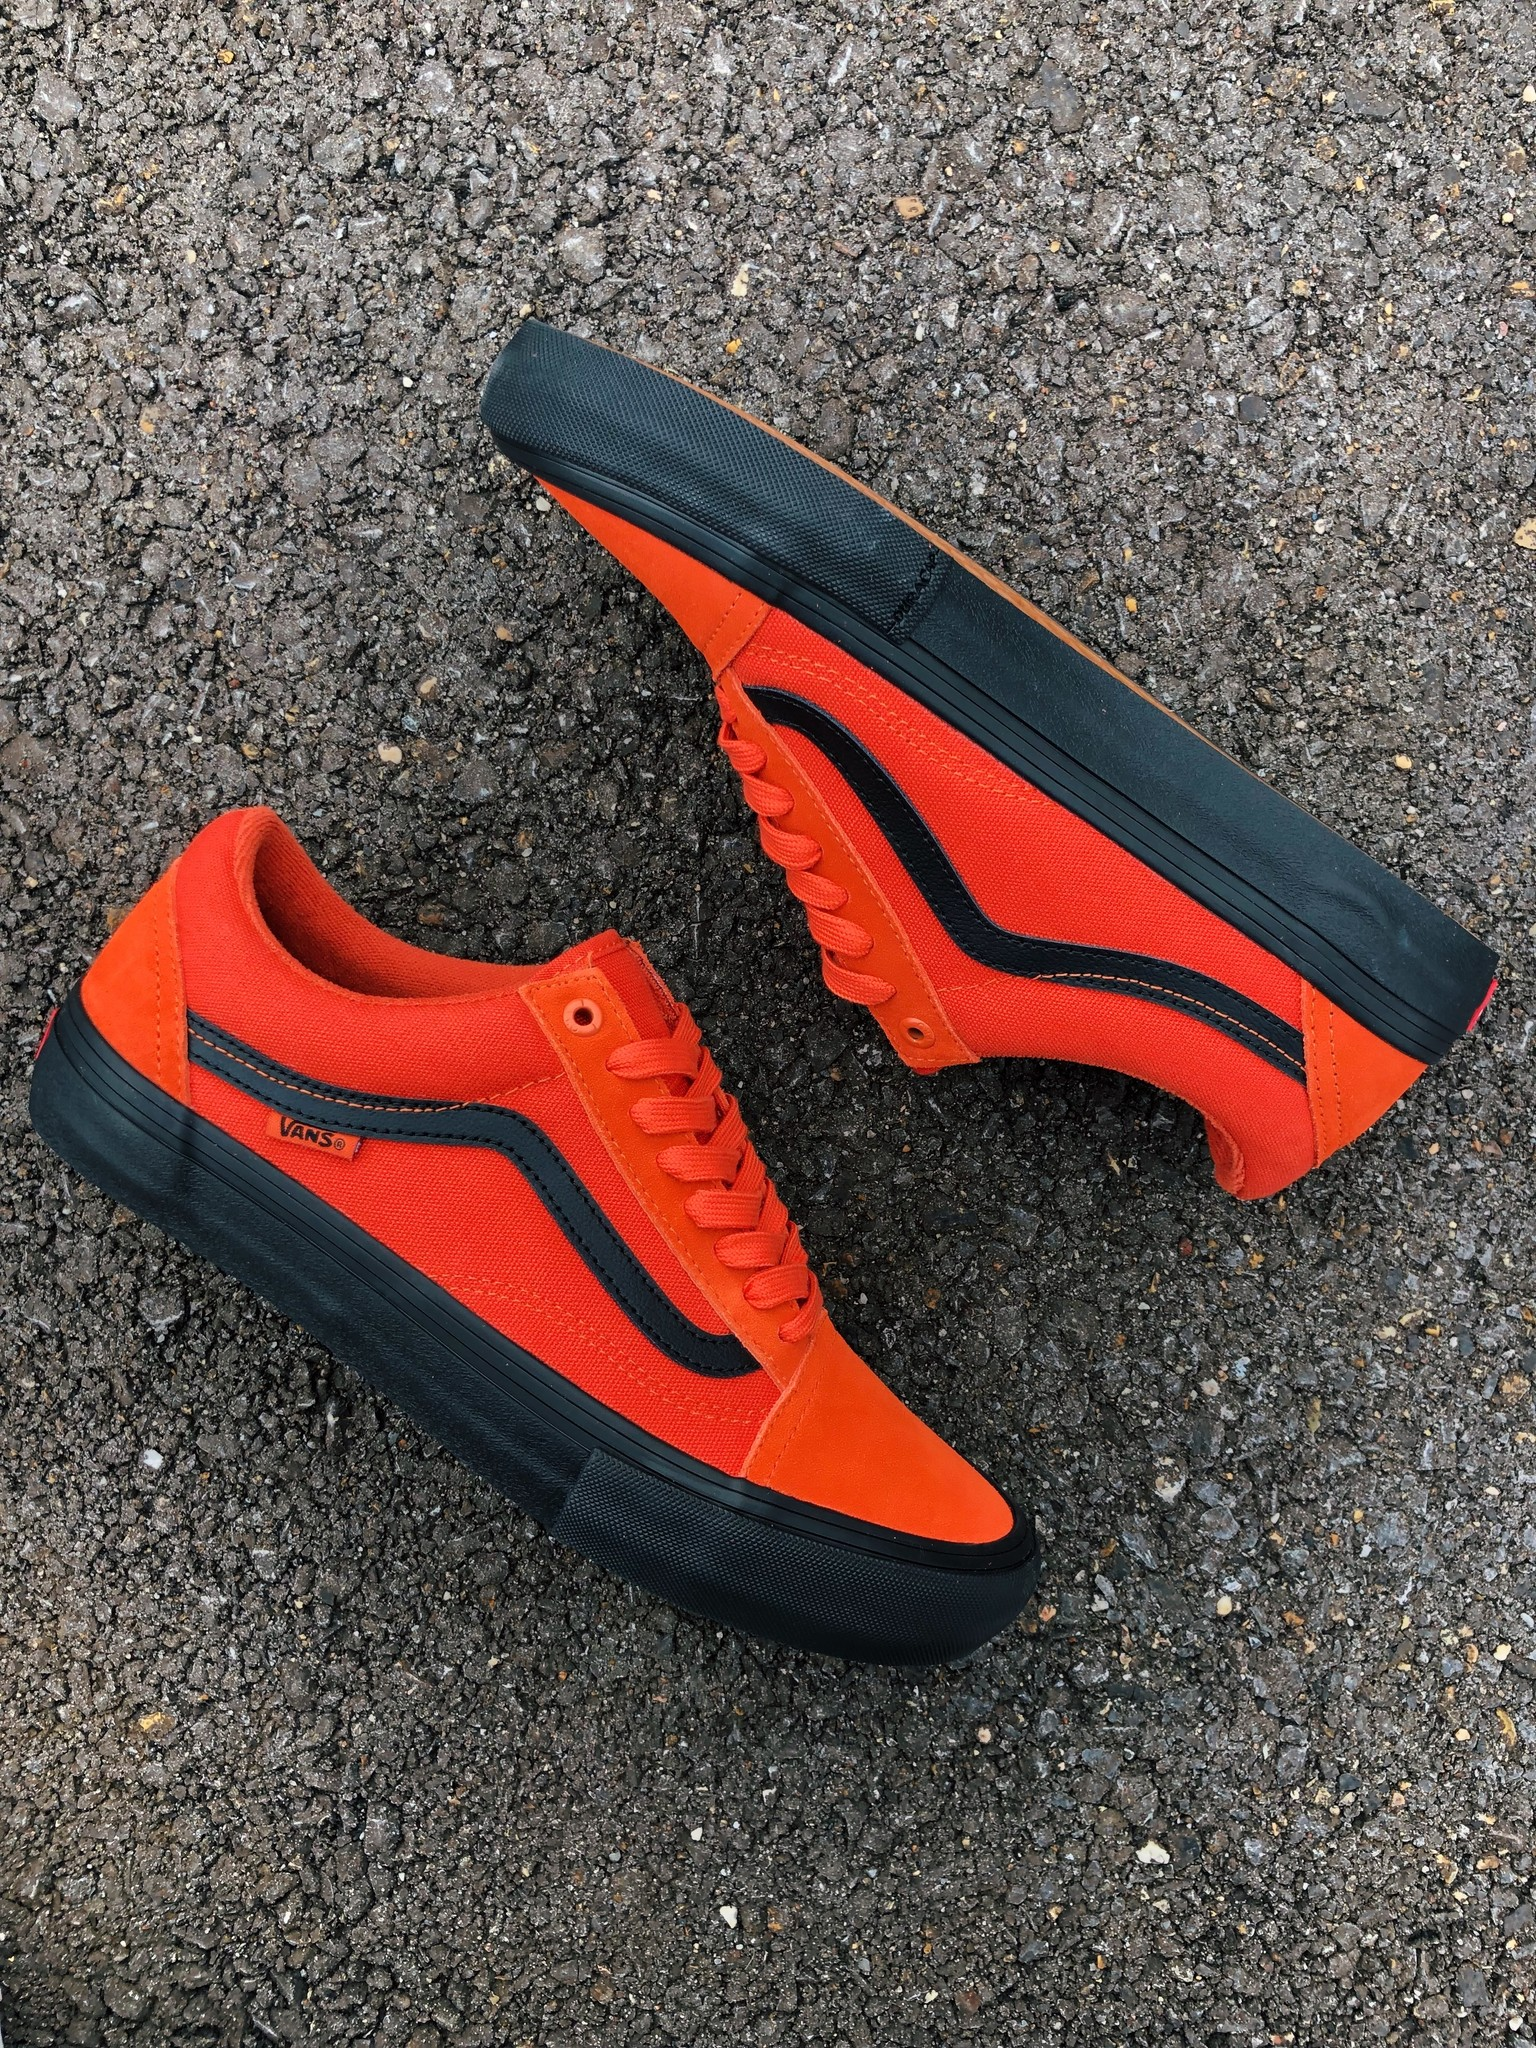 Vans Old Skool Pro Koi/Black